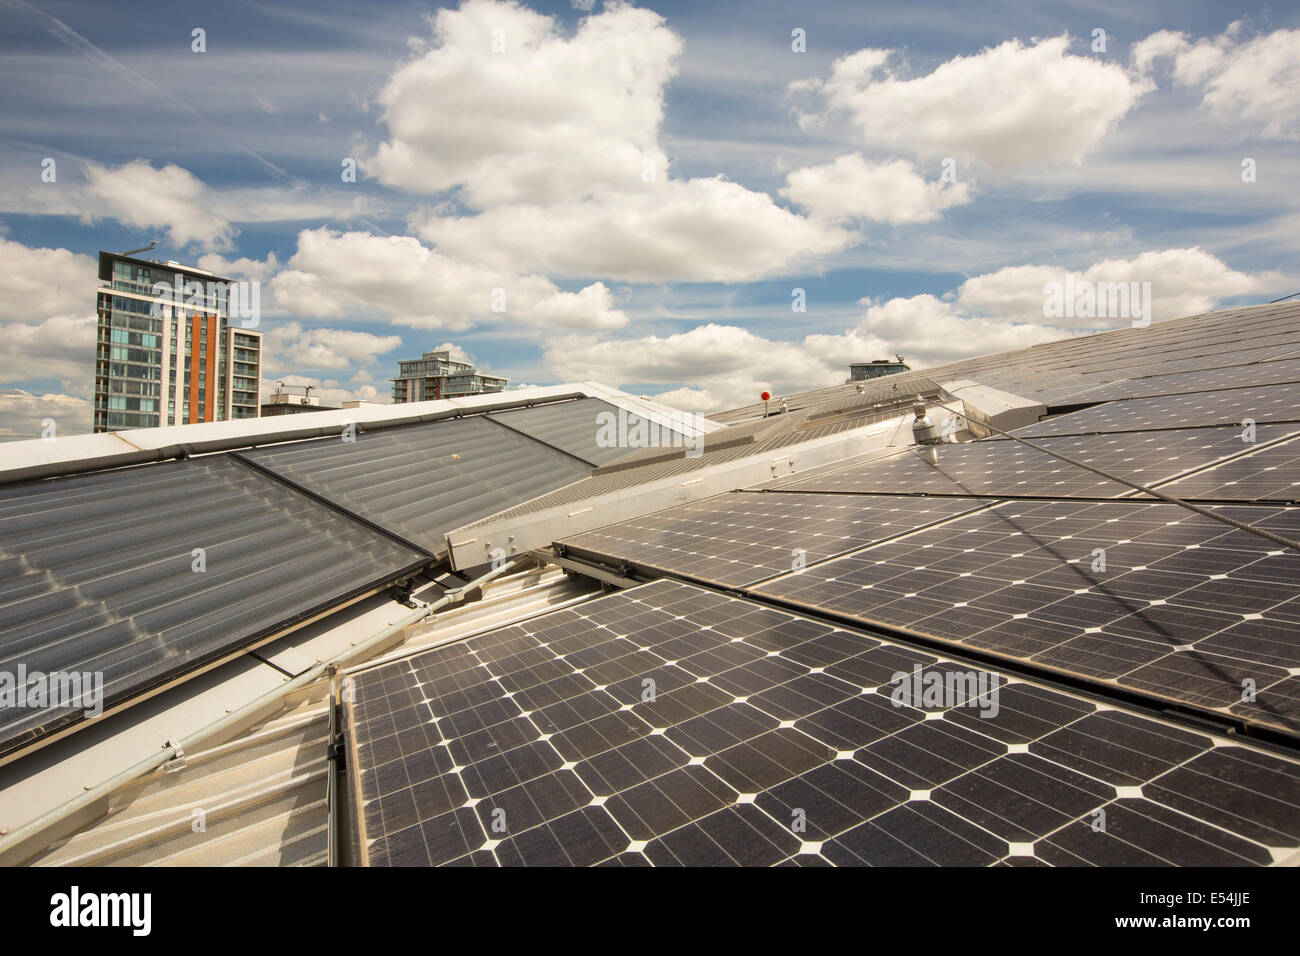 Solar Thermal And Solar Pv Panels On The Roof Of The